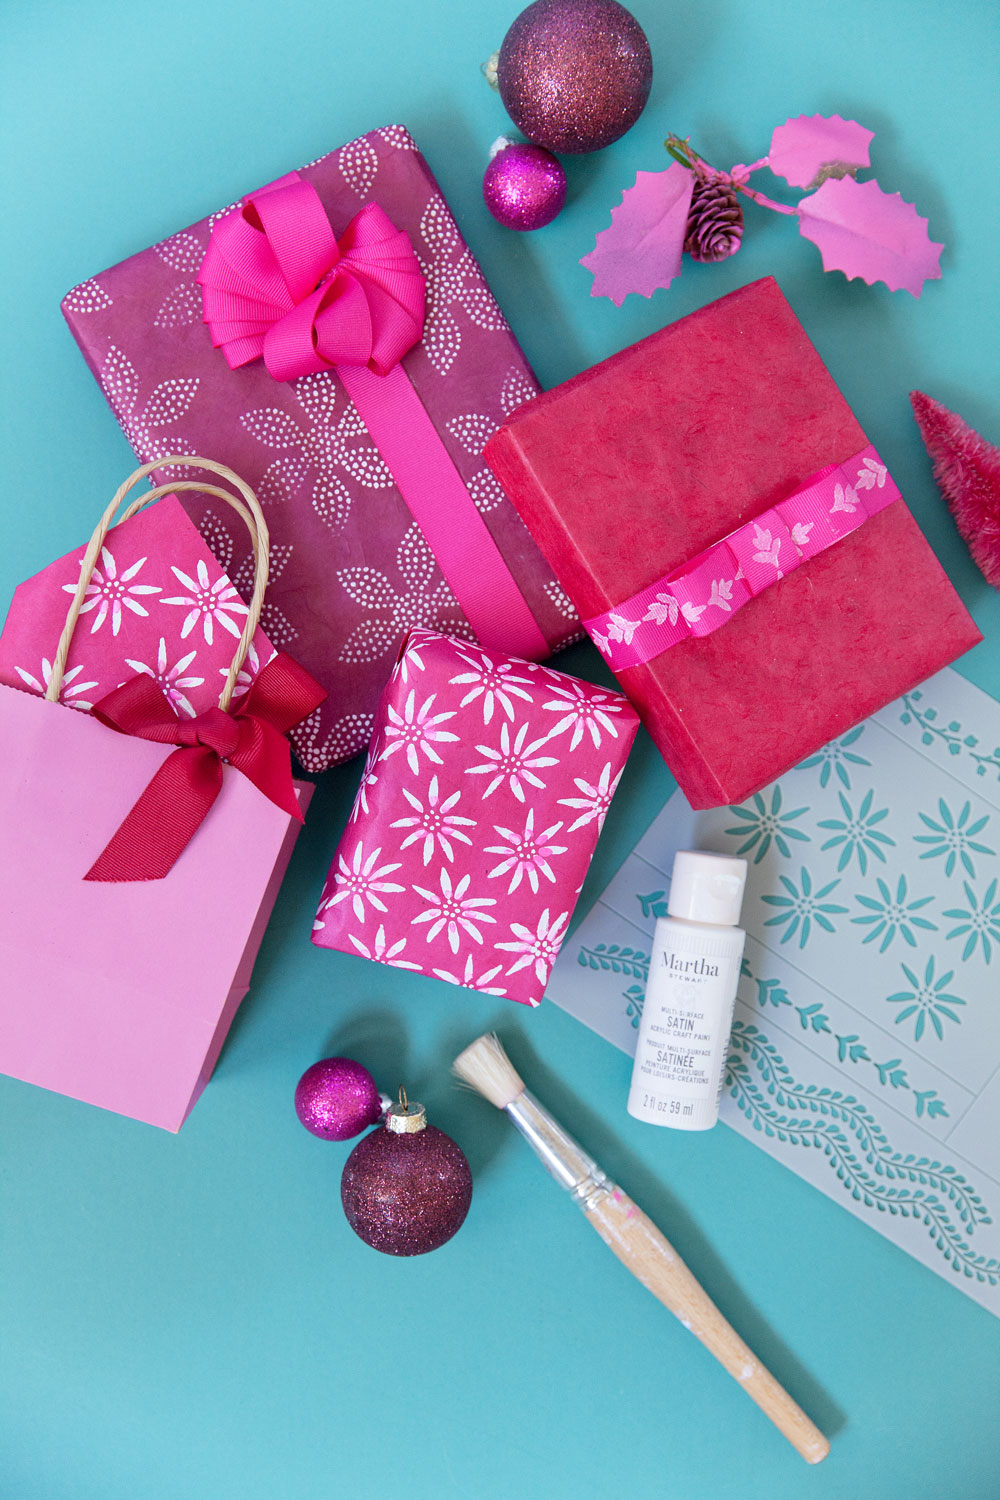 Learn how to make your wrapping paper beautiful with this DIY stencil gift wrap tutorial. It's simple, fast and will take your gift giving to the next level